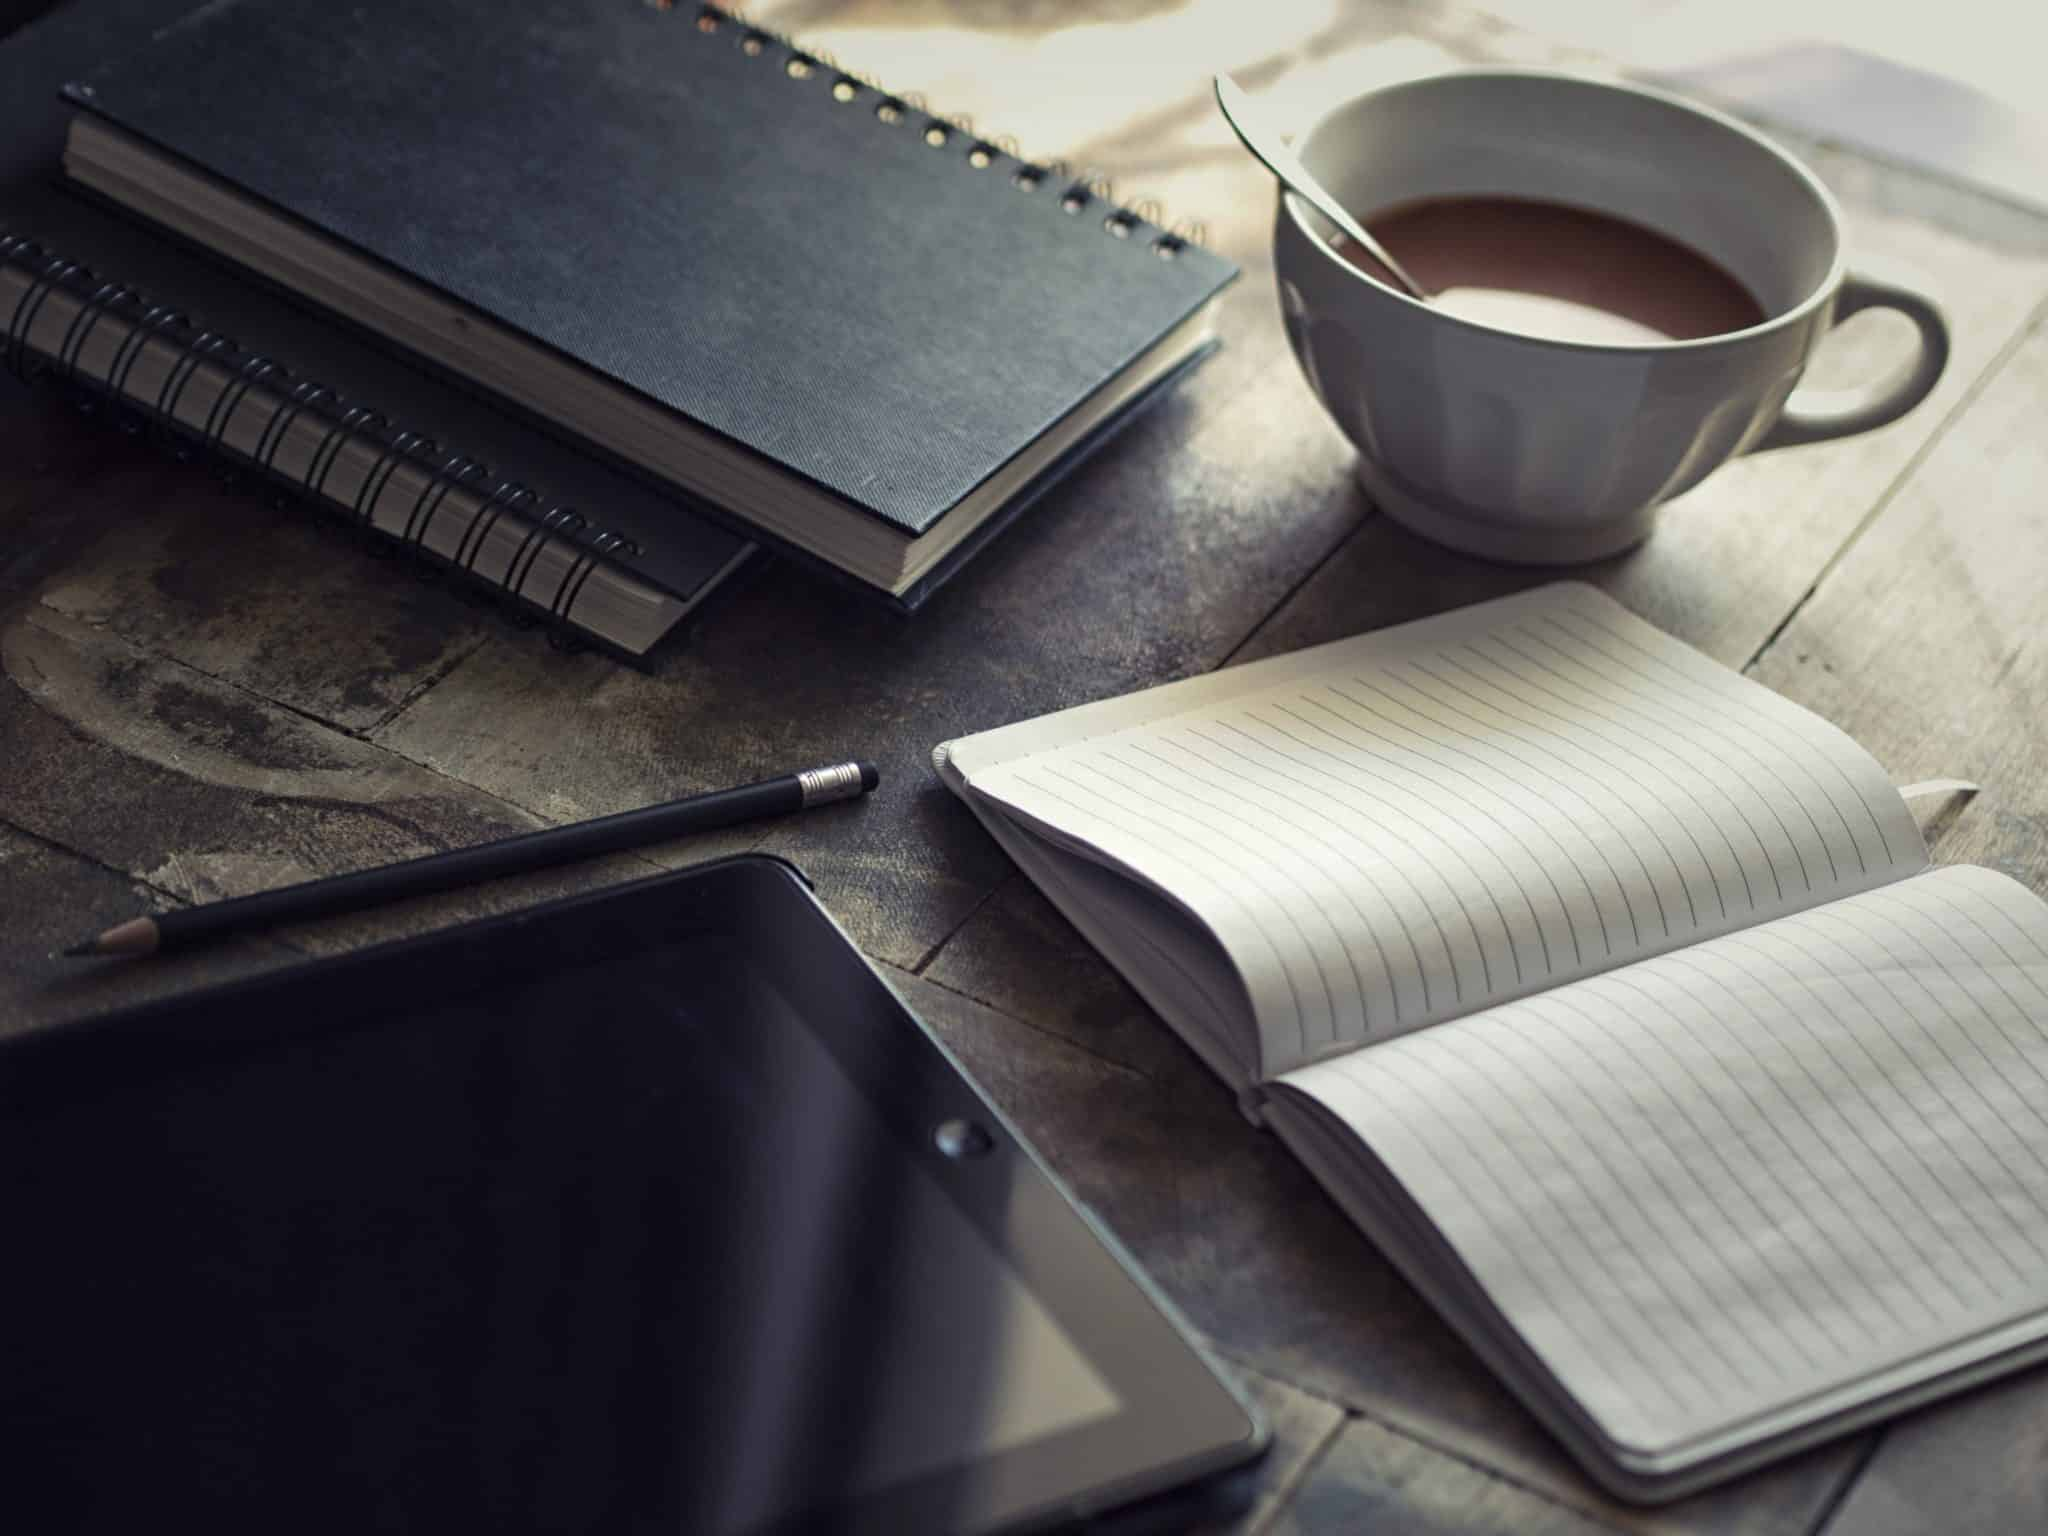 The Simple Guide To Writing A Blog That People Want To Read (And Could Make You Some Money Too)